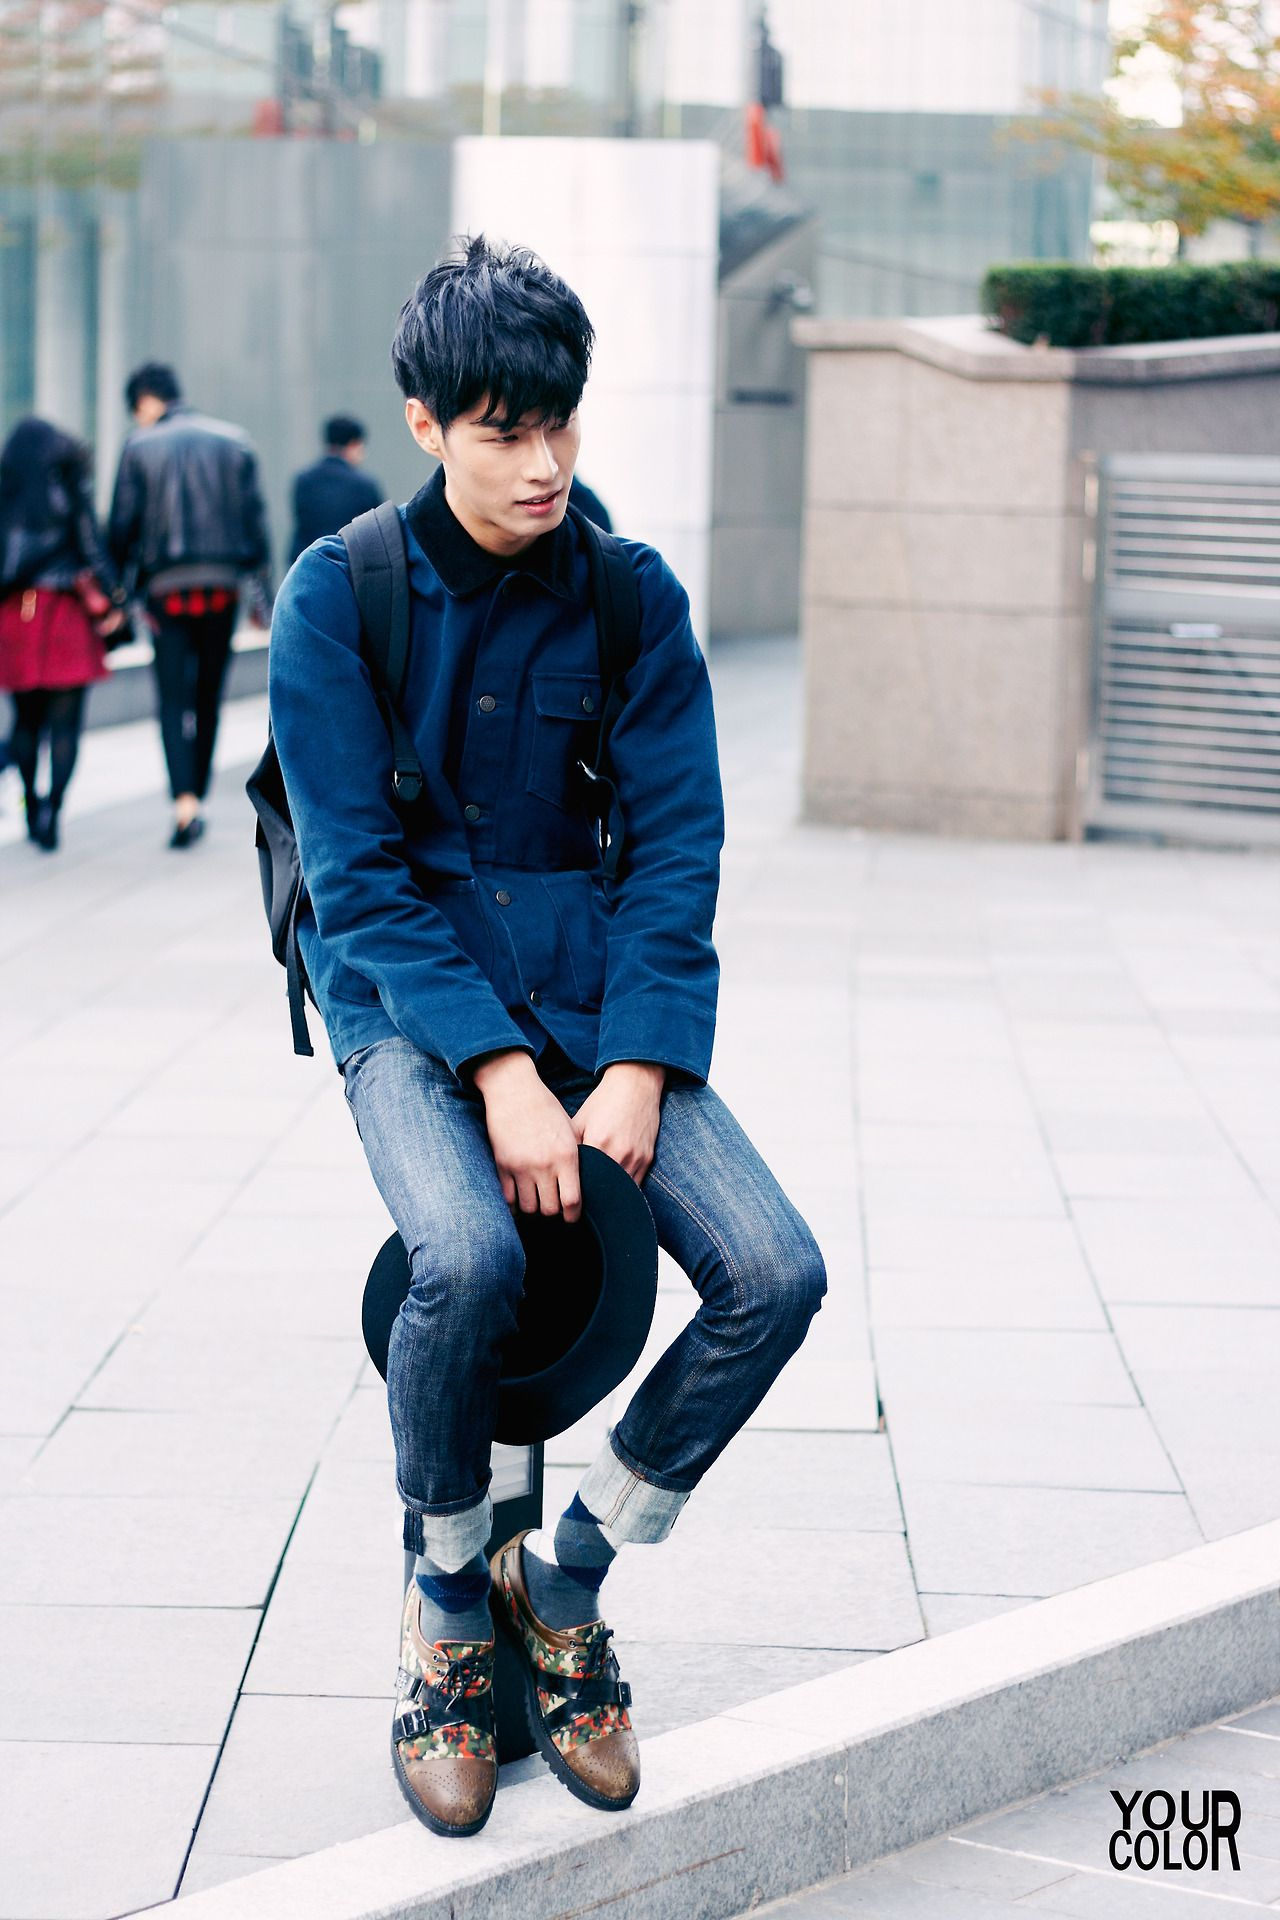 Korean Boy Street Fashion The Hippest